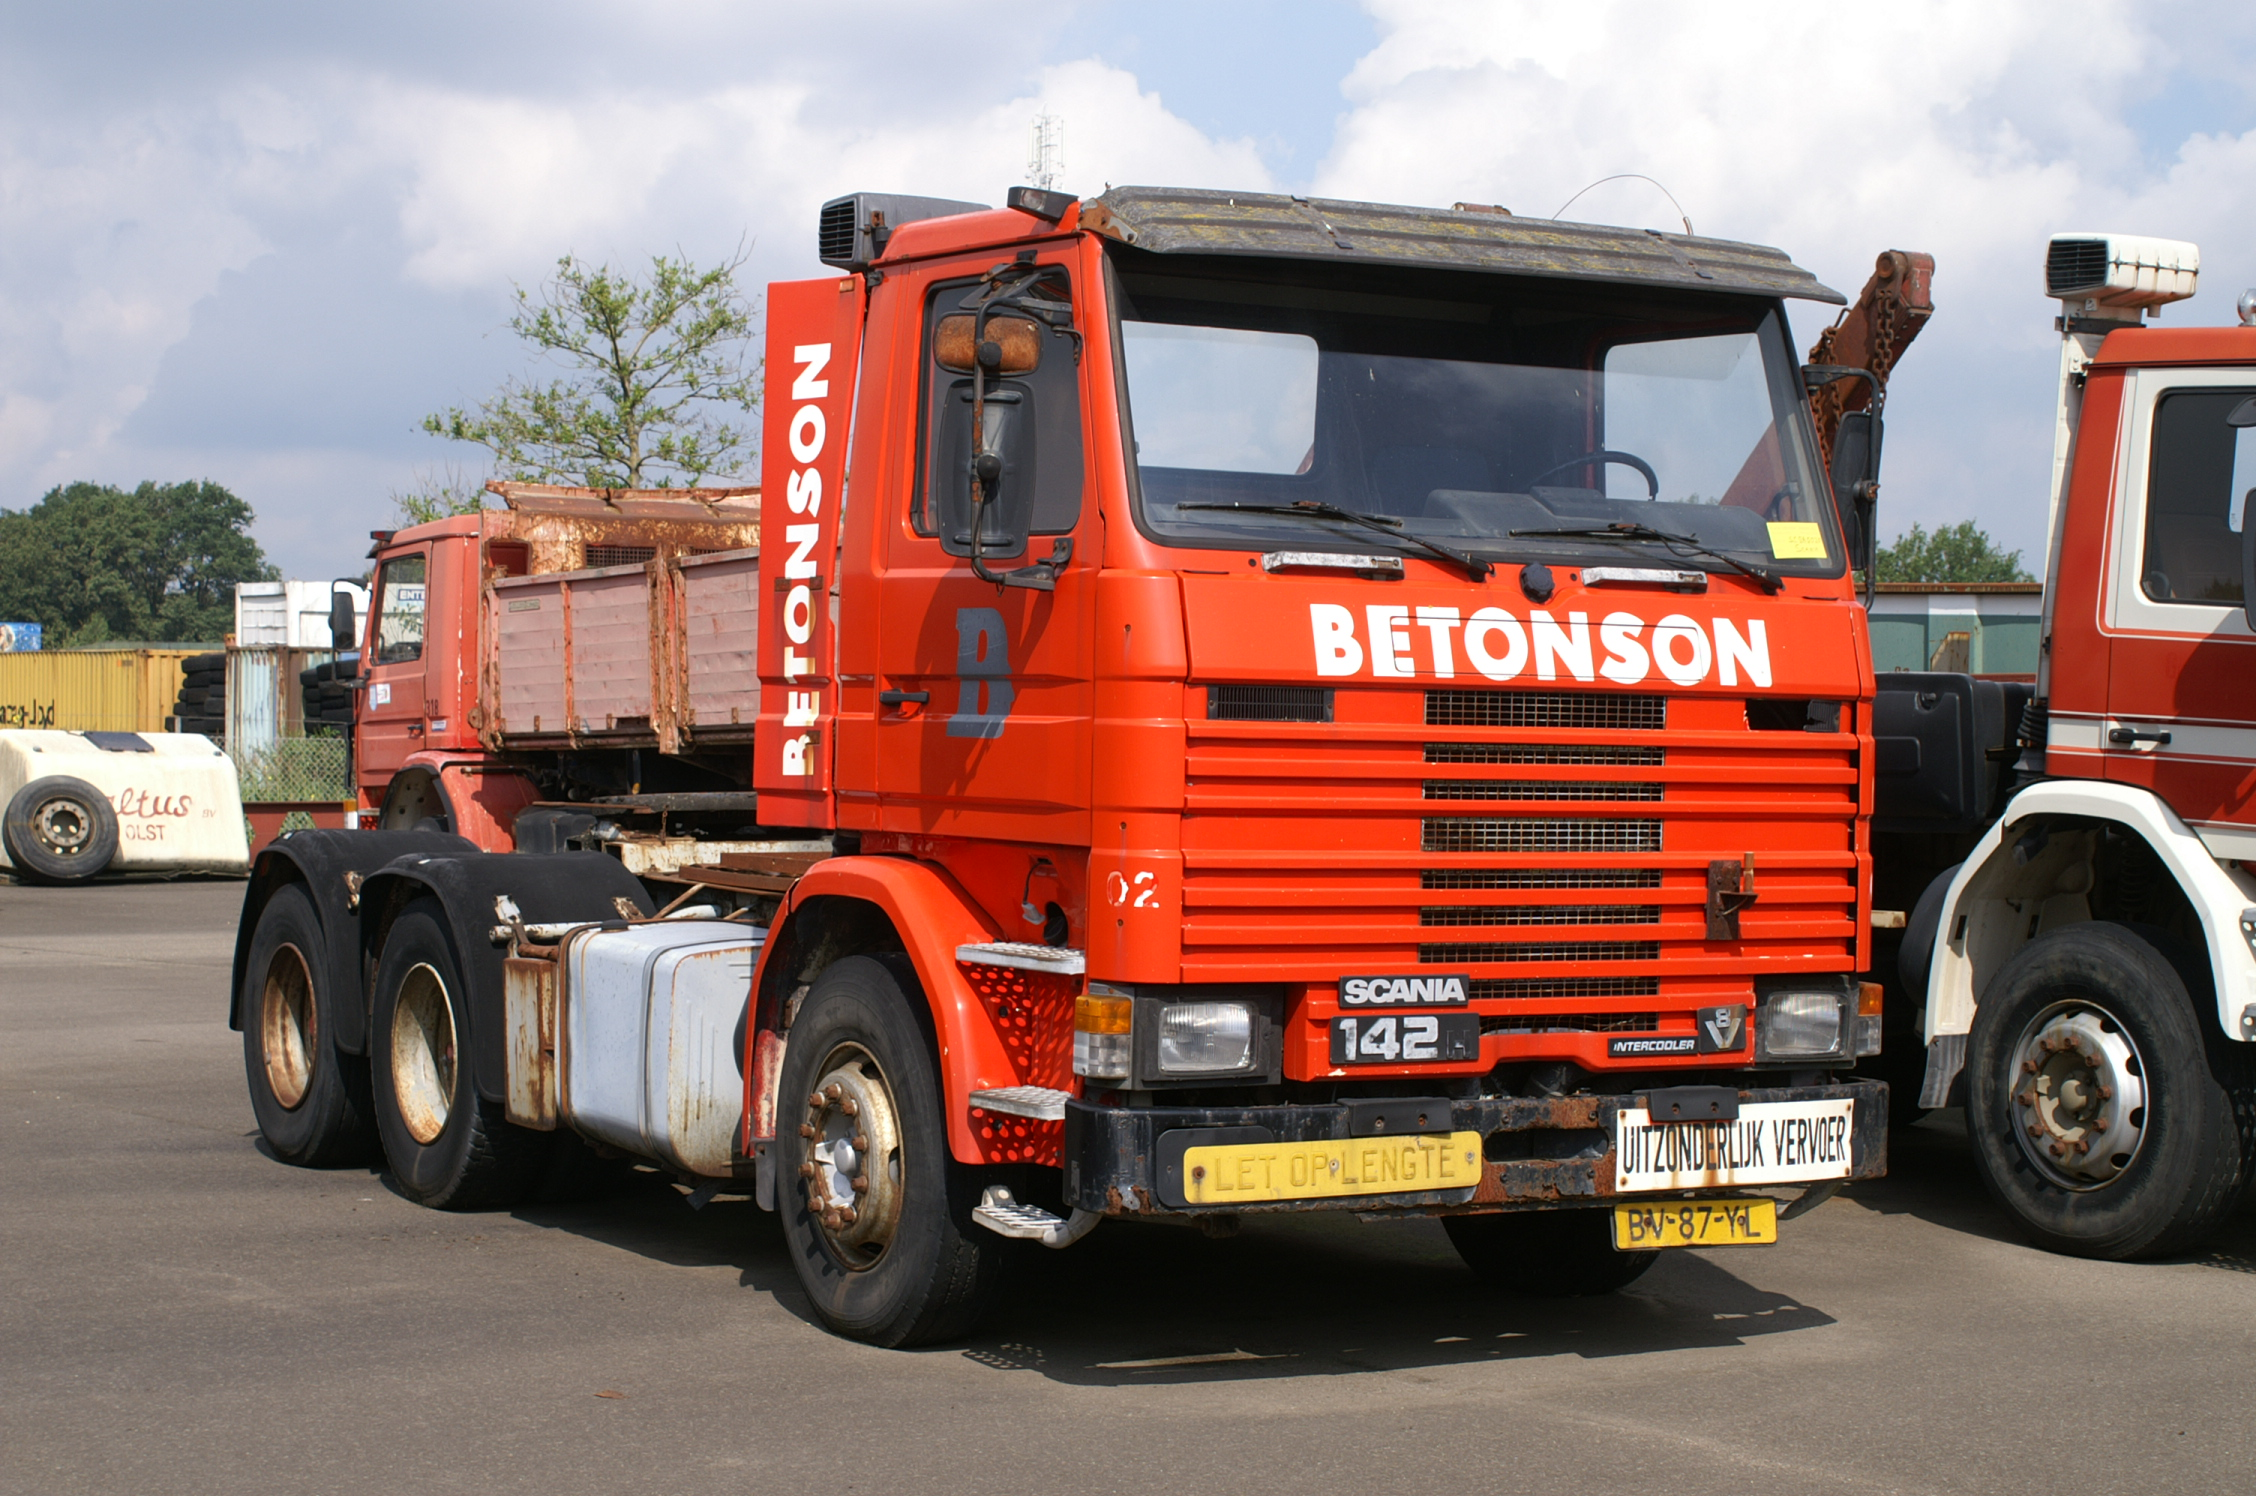 scania r 142 h bv87yl beton... cab Photo album by Mackf786